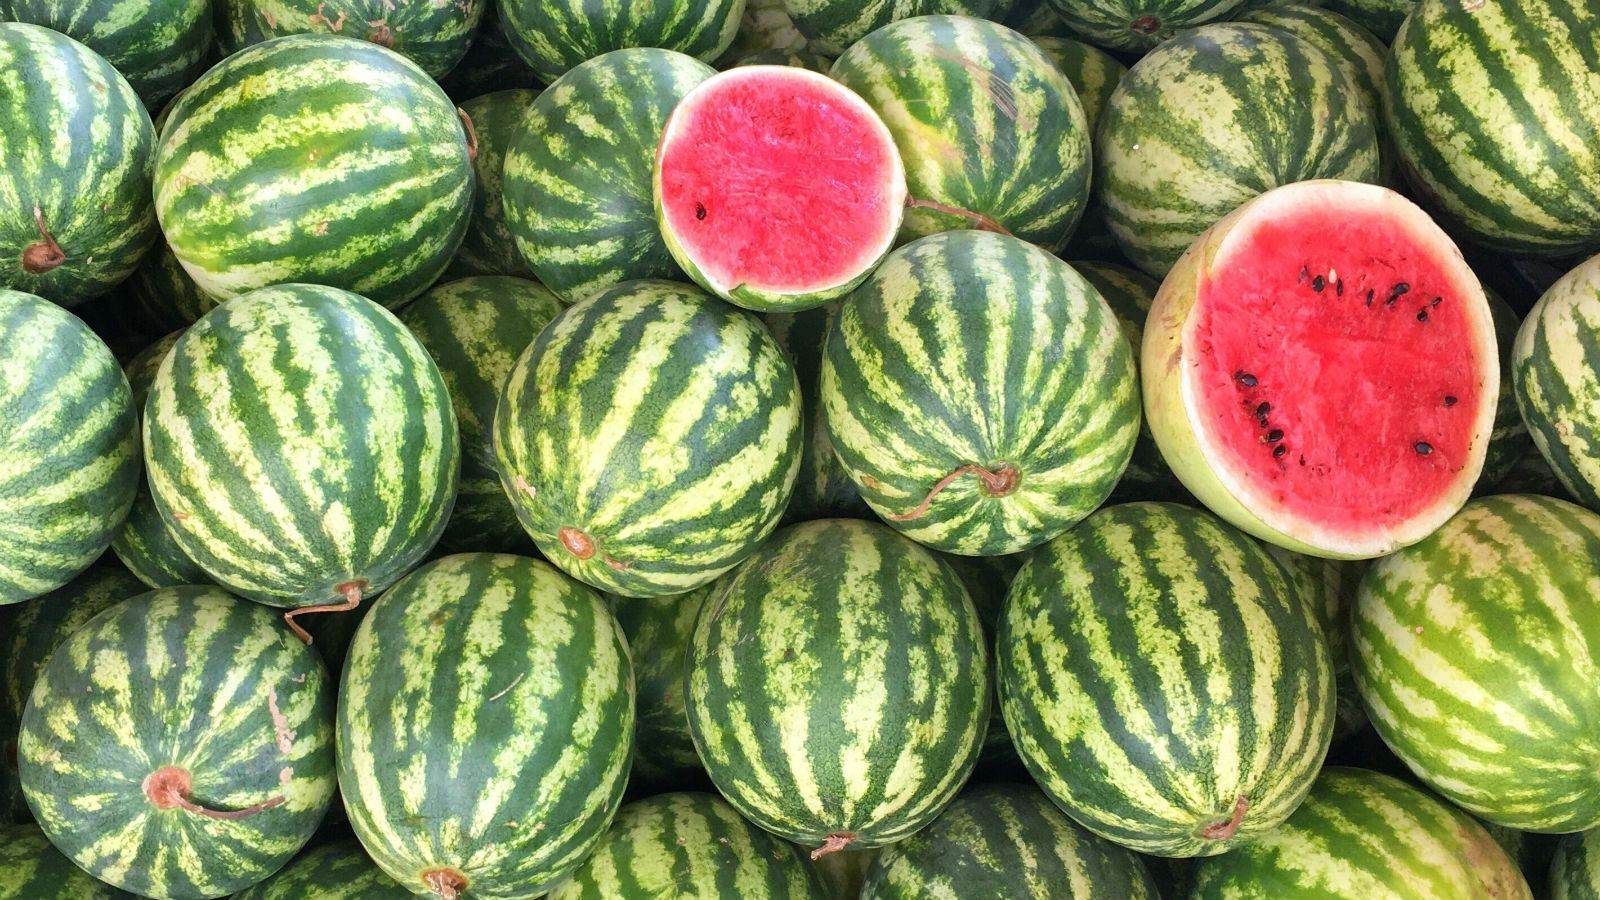 Exports of Uzbek watermelons to Russia decreases